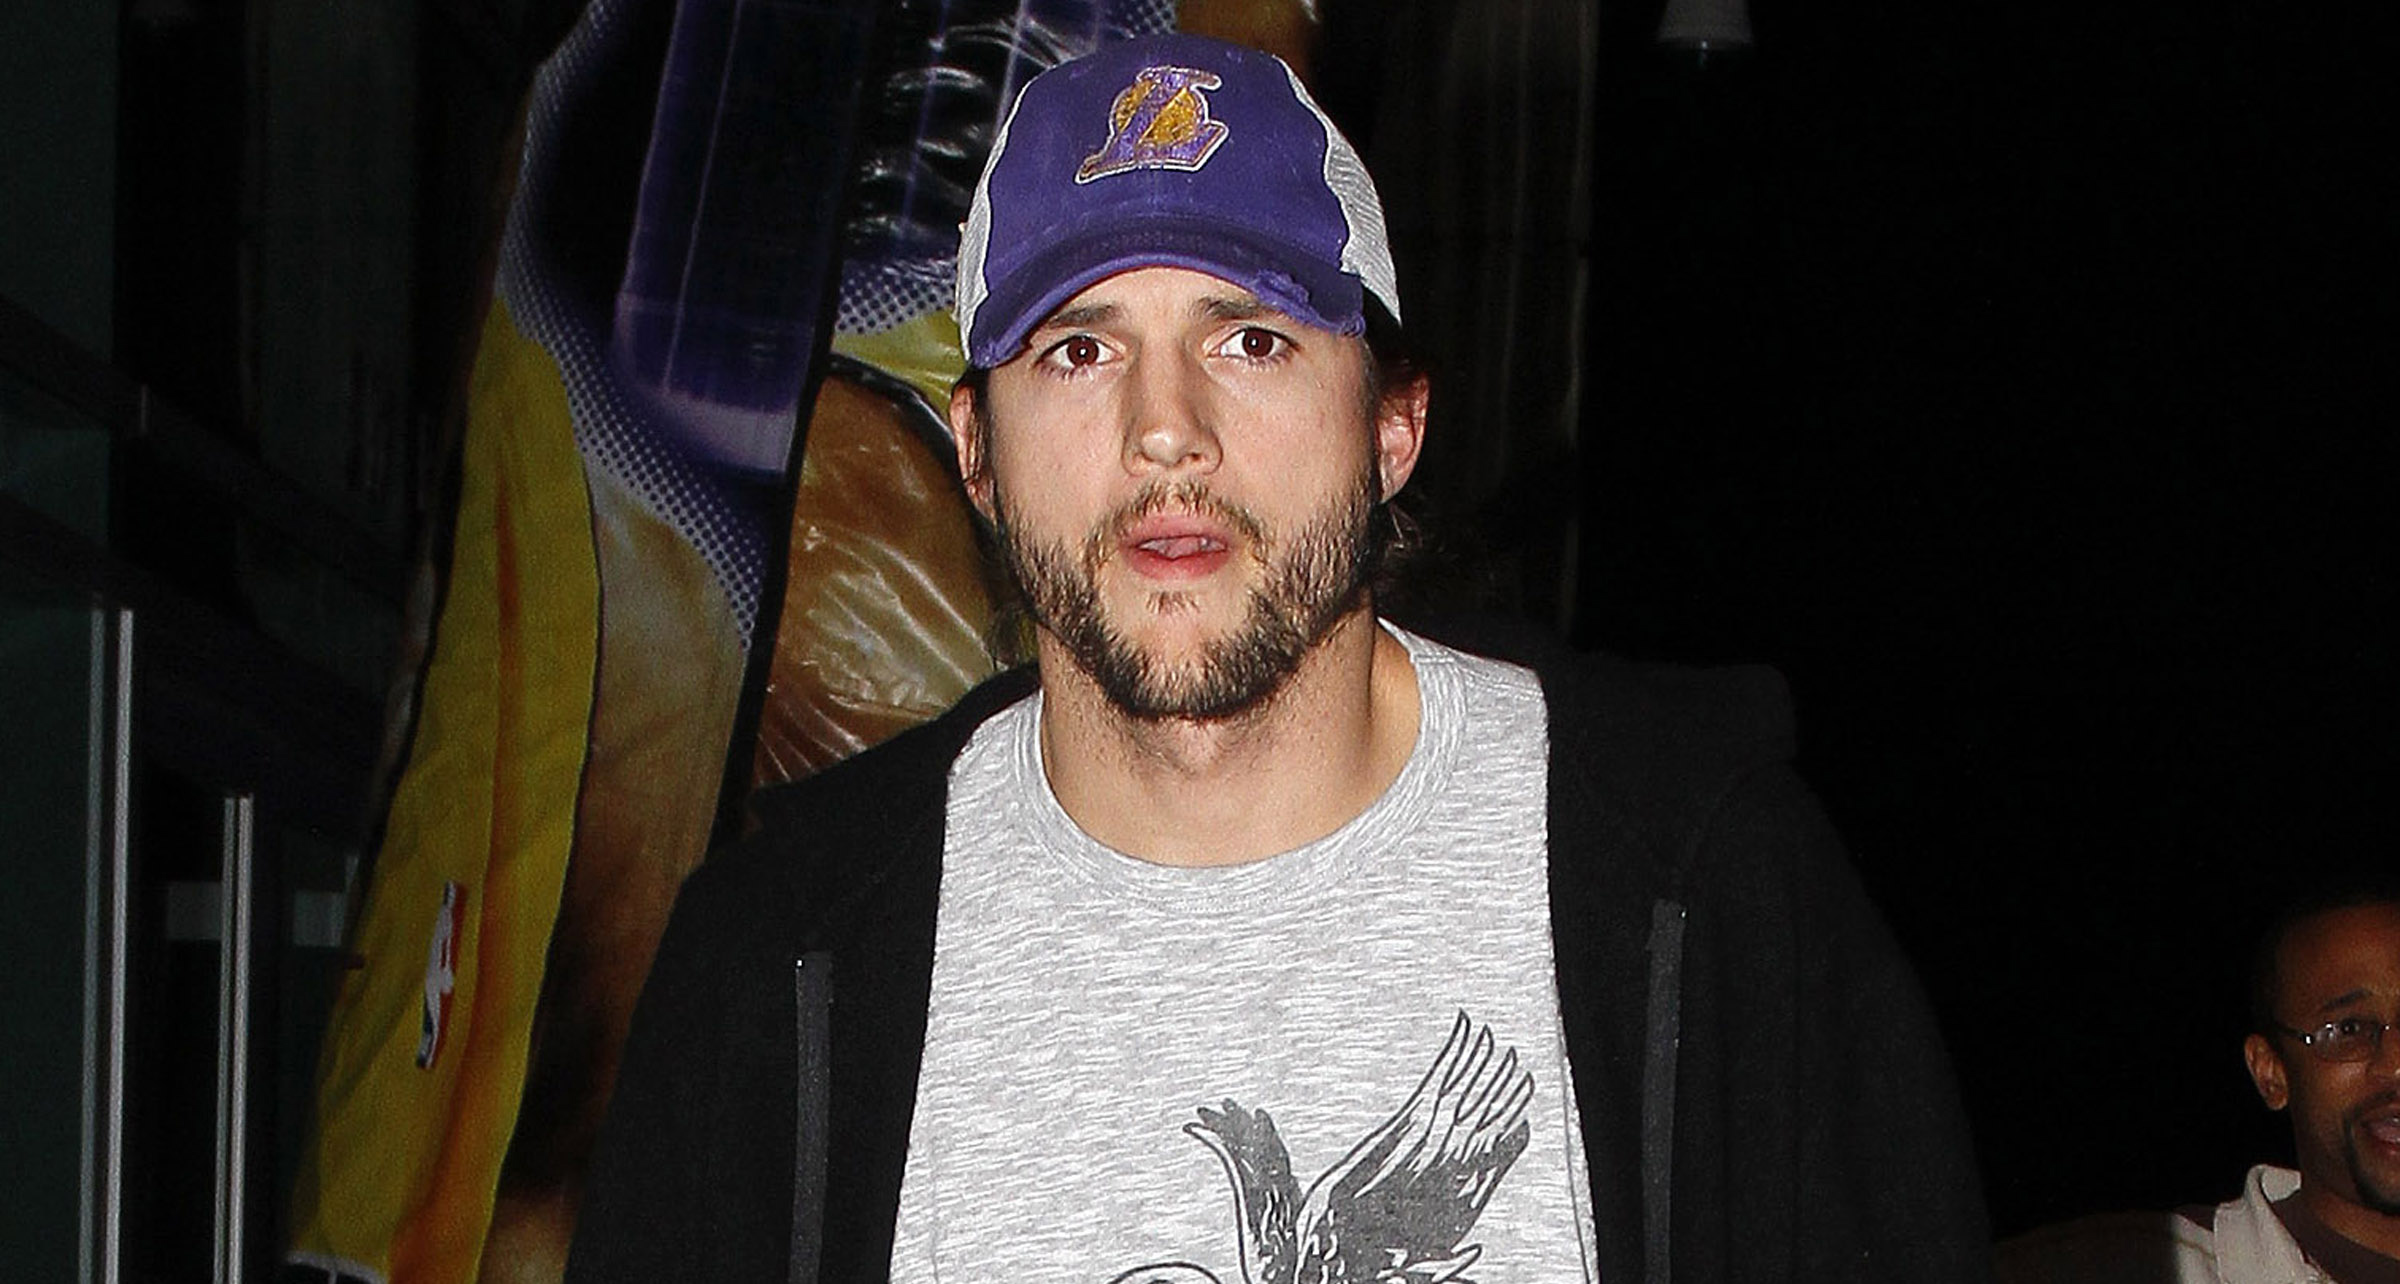 ashton-kutcher-lakers-0320